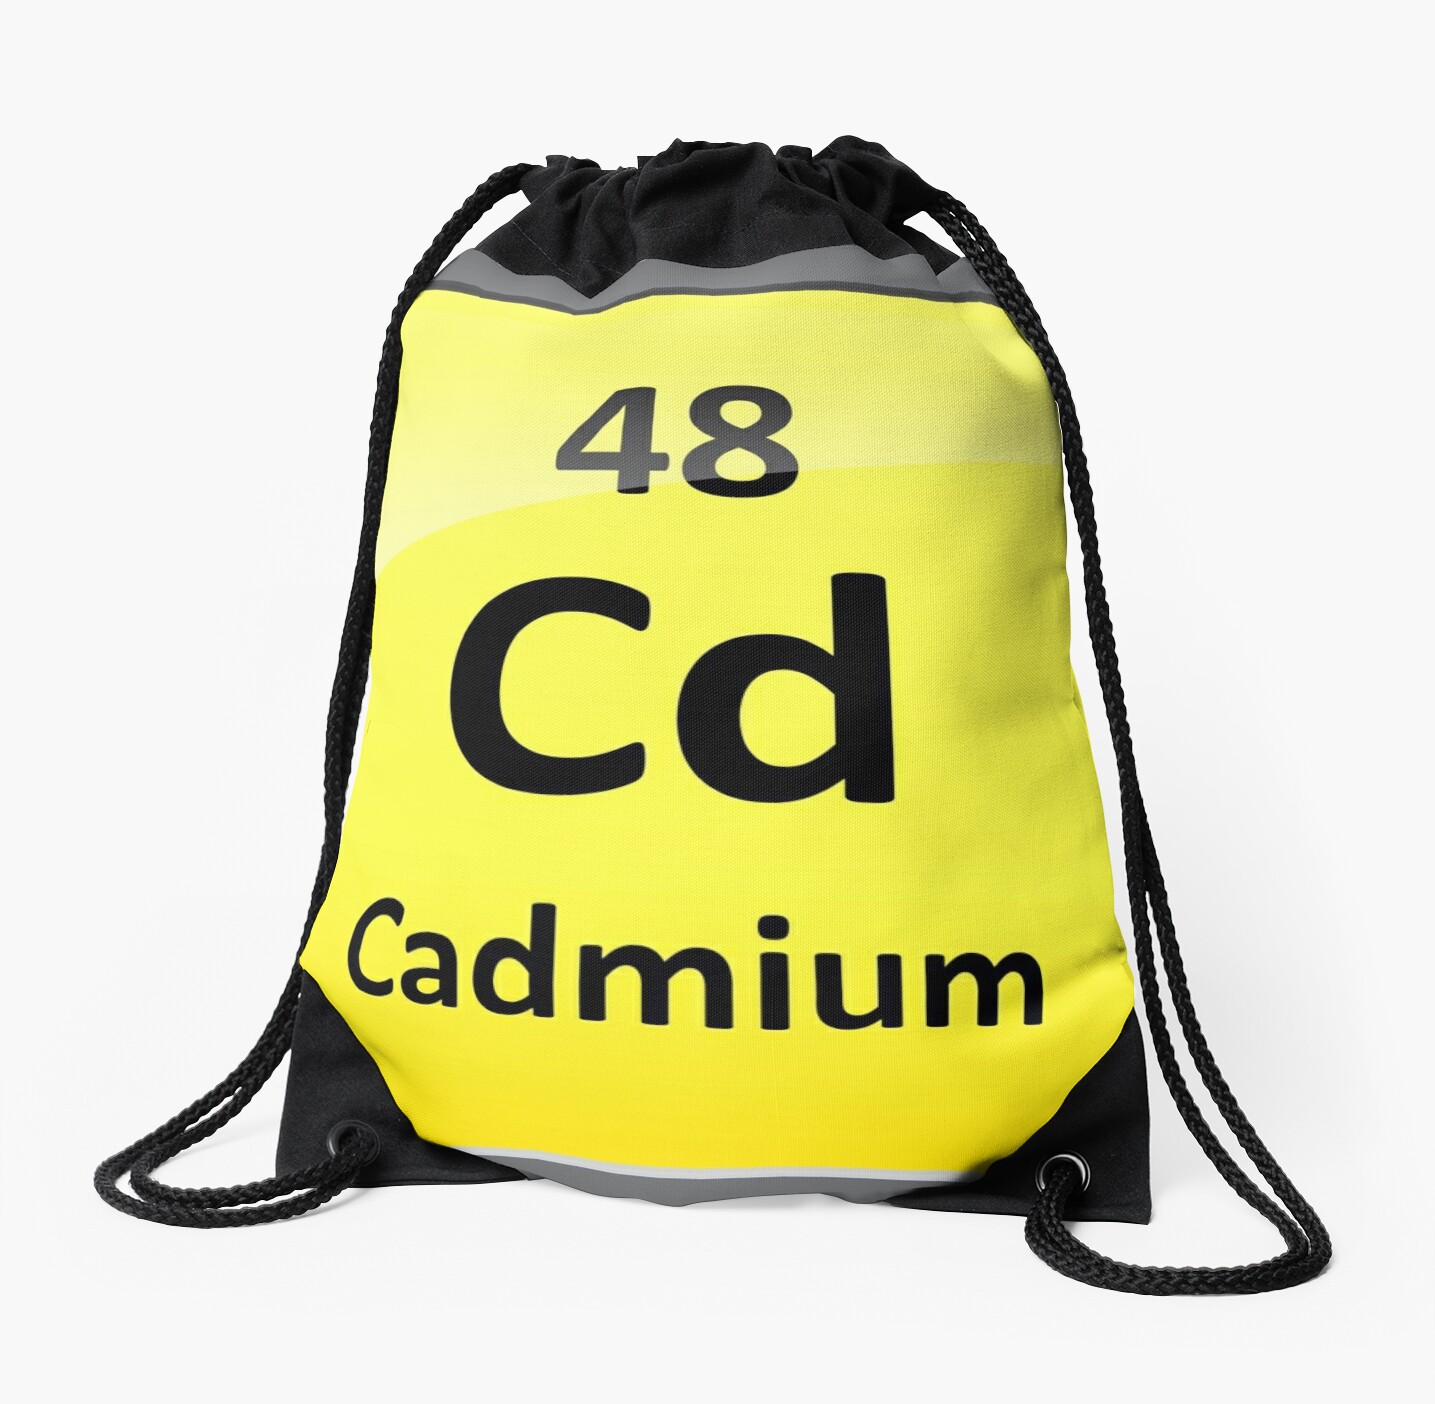 Cadmium Periodic Table Element Symbol Drawstring Bags By